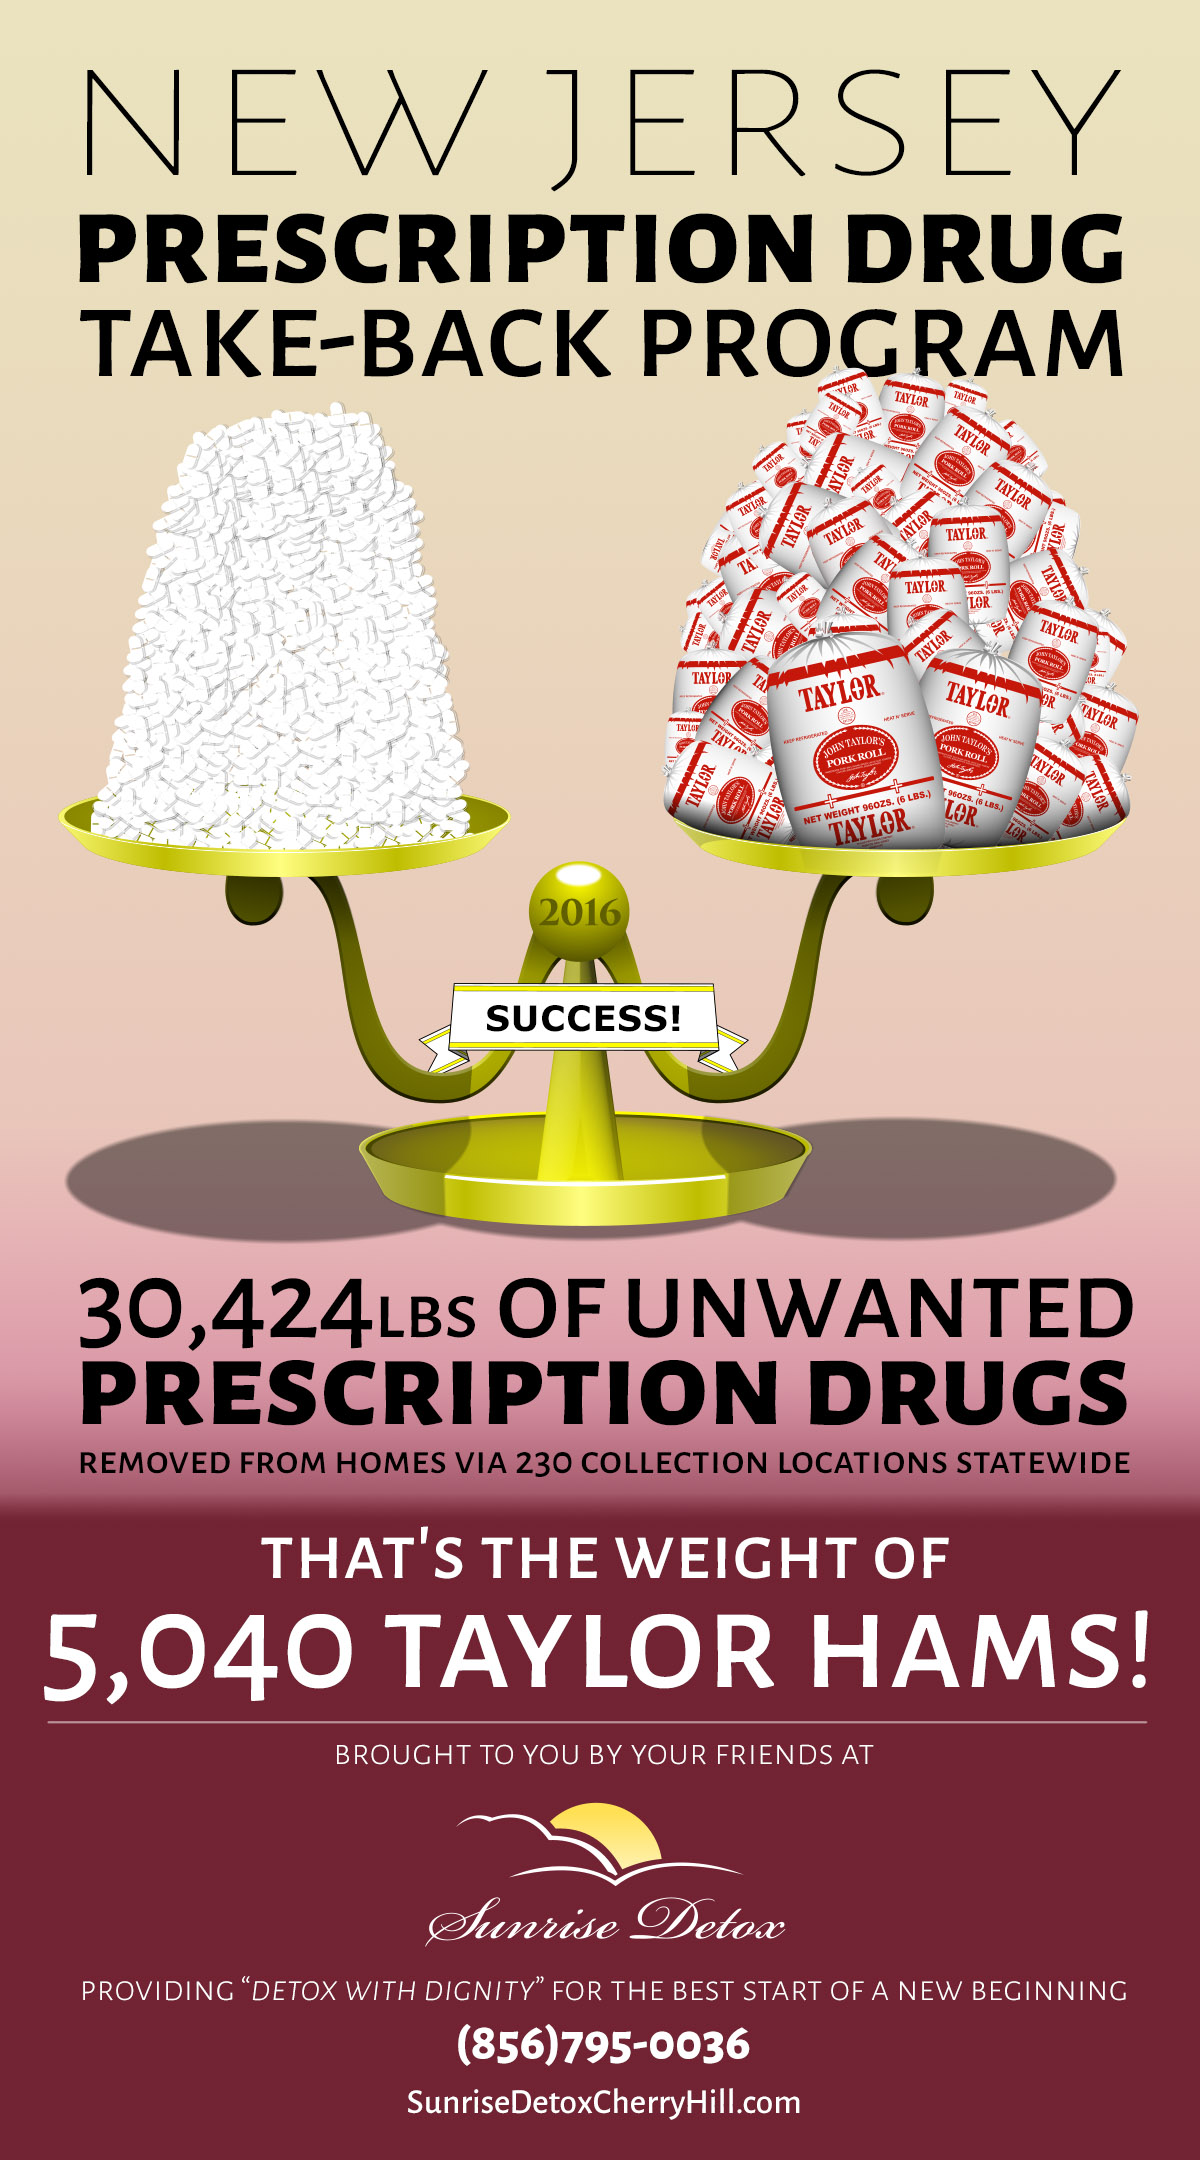 Sunrise is proud to announce that the 2016 Prescription Drug Take-Back Day removed over 9 tons of unwanted medication from New Jersey homes!